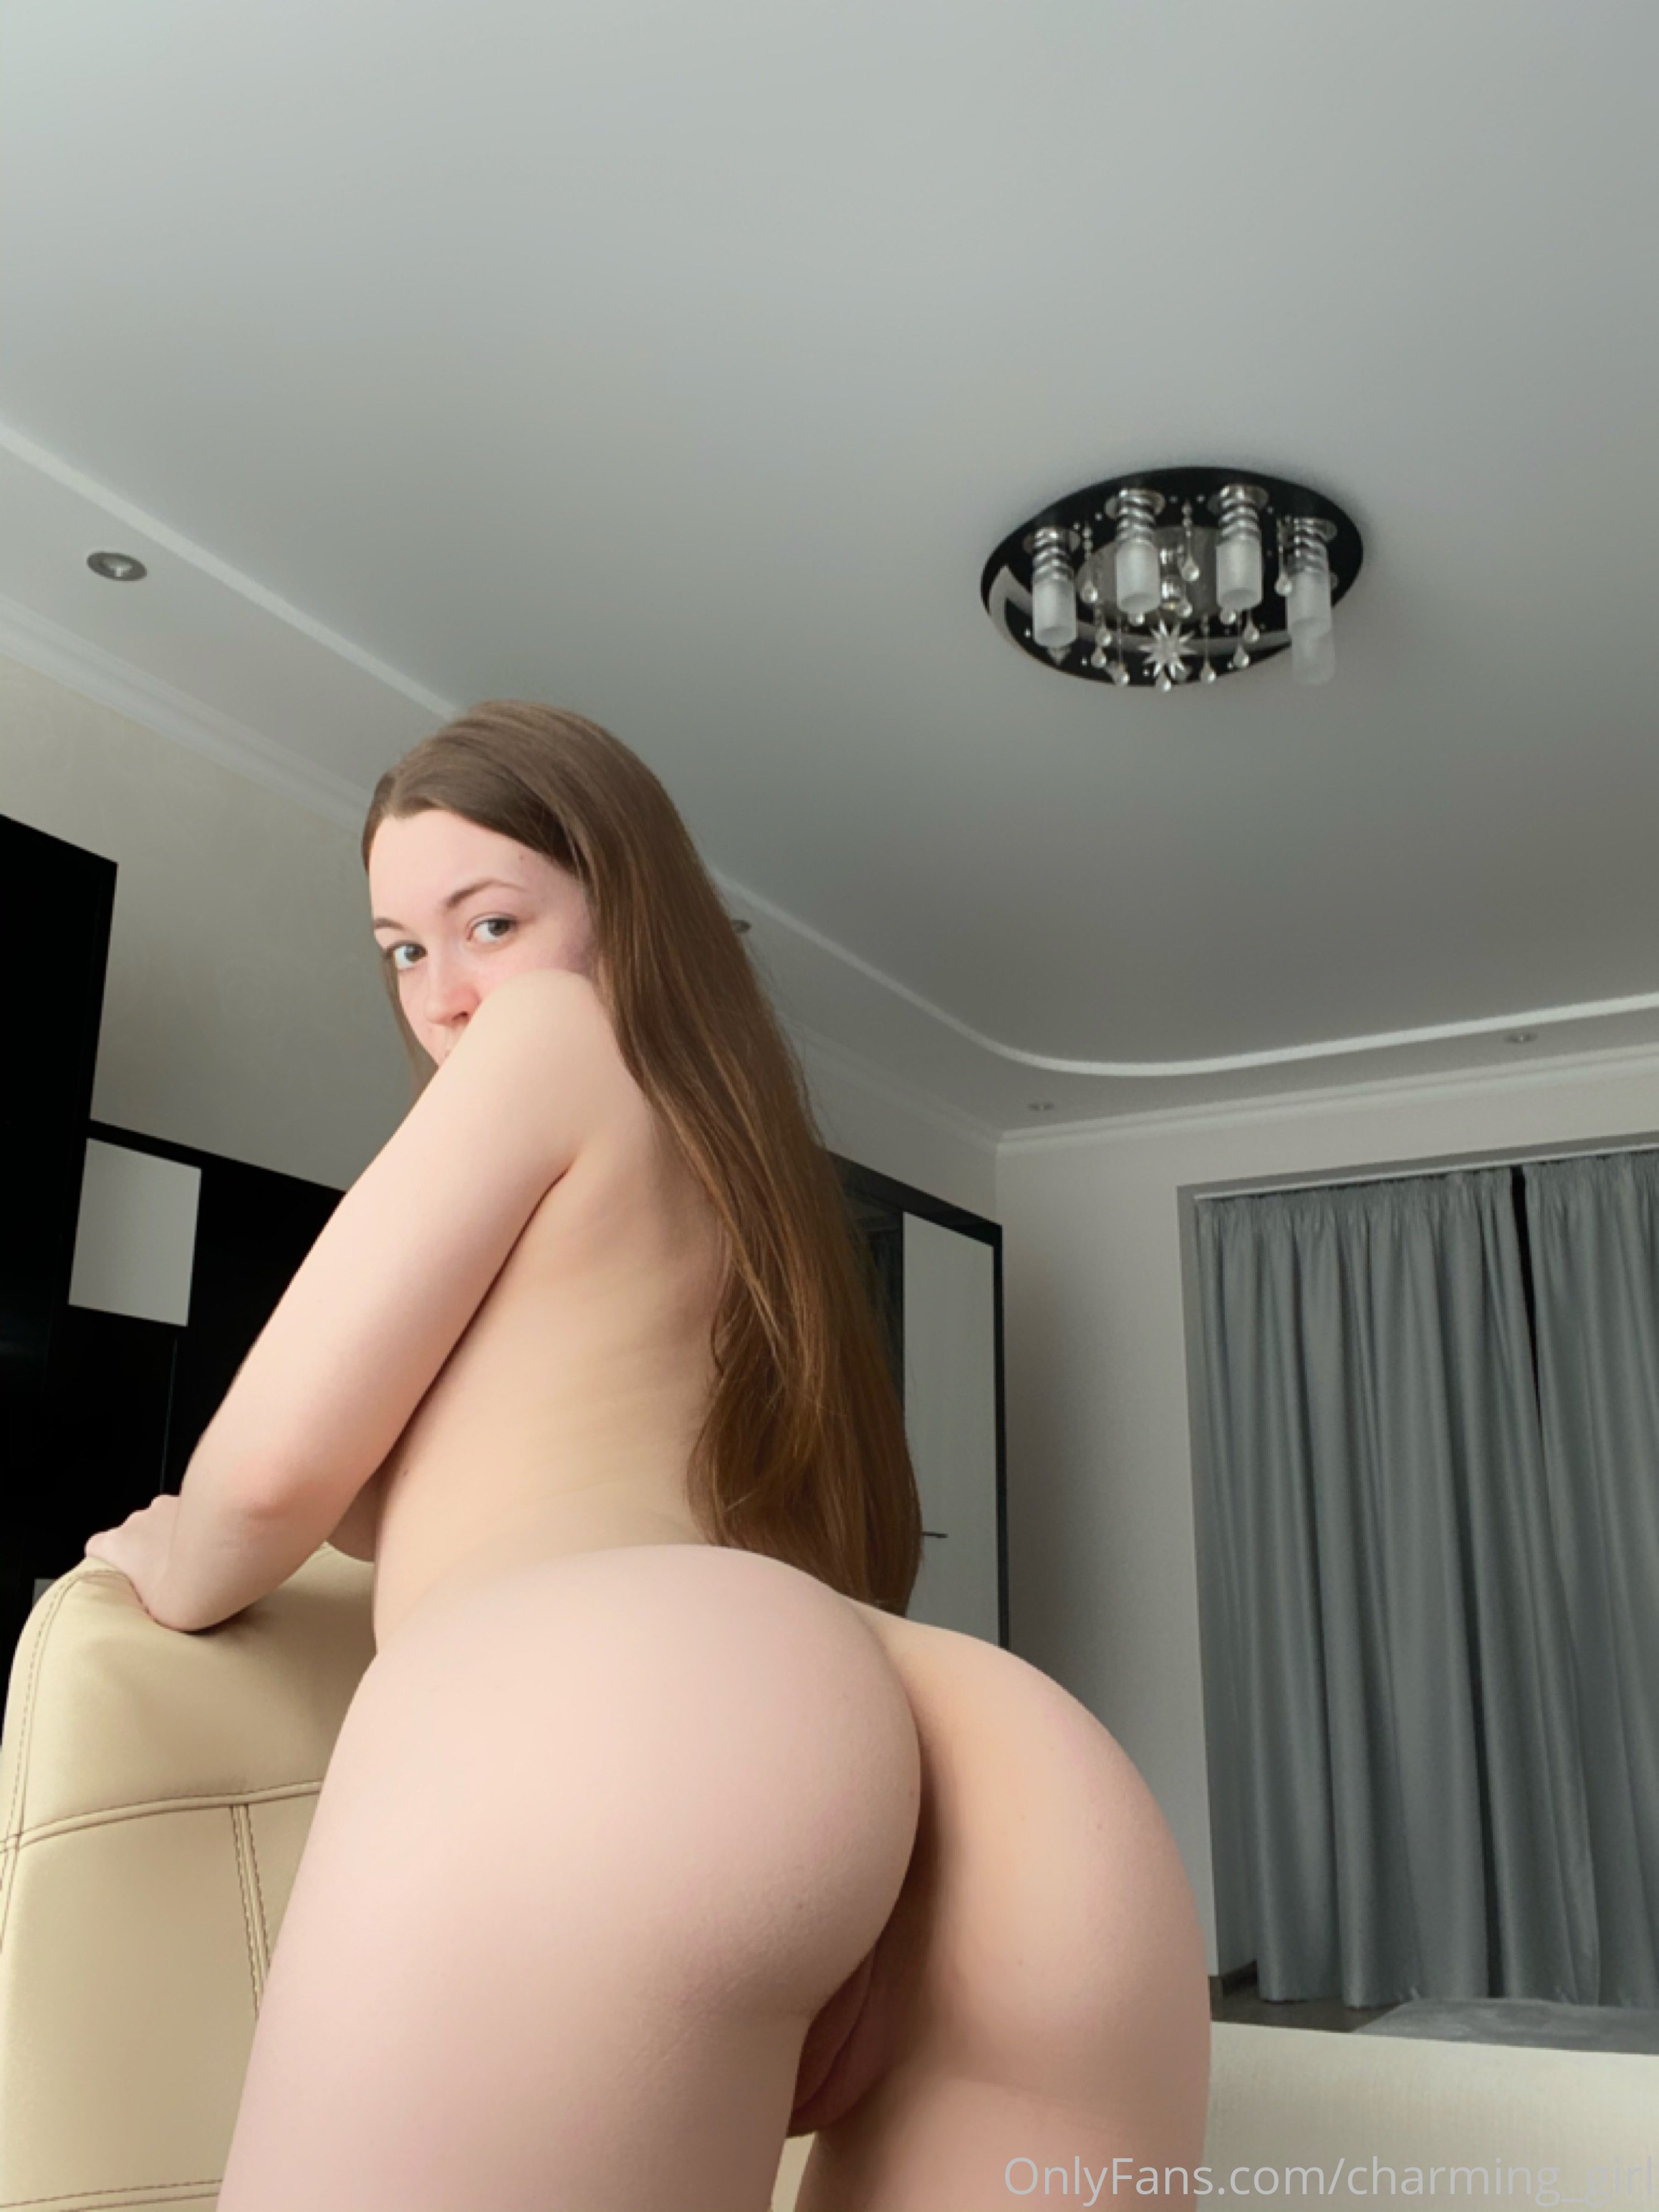 Milana, Charming Girl, Onlyfans 0005